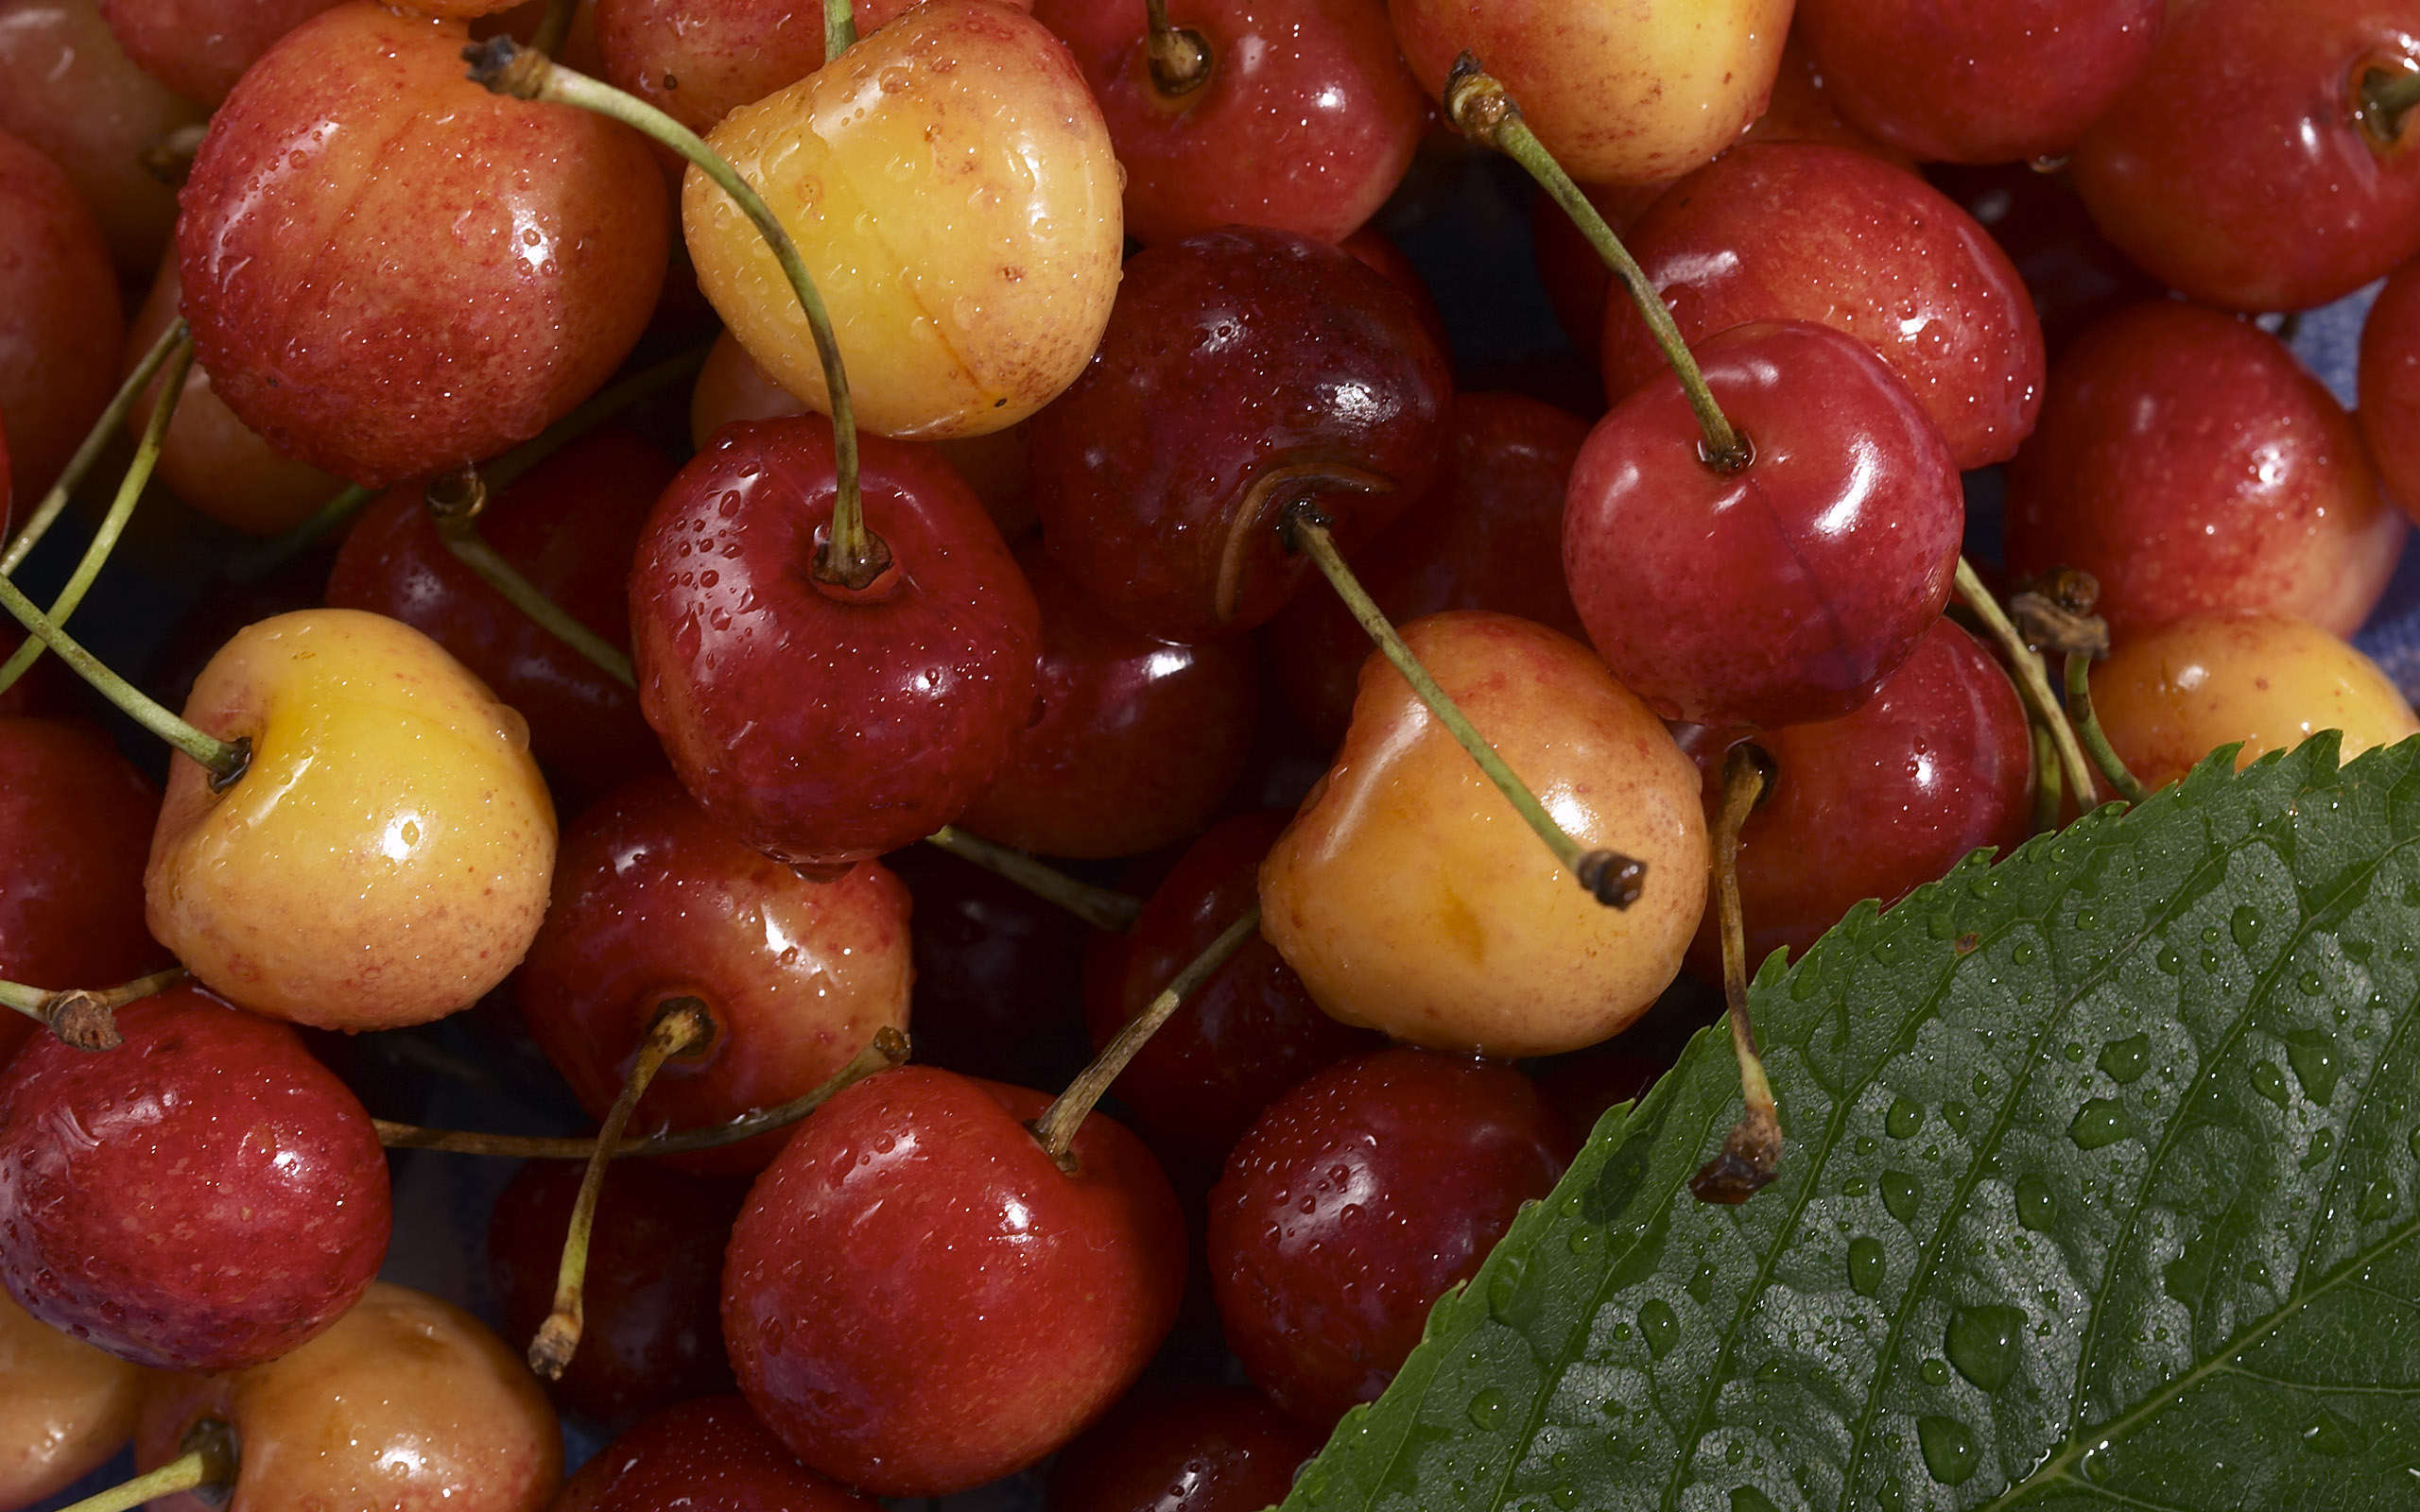 Awesome-Cherries-wallpaper-wp4603909-1